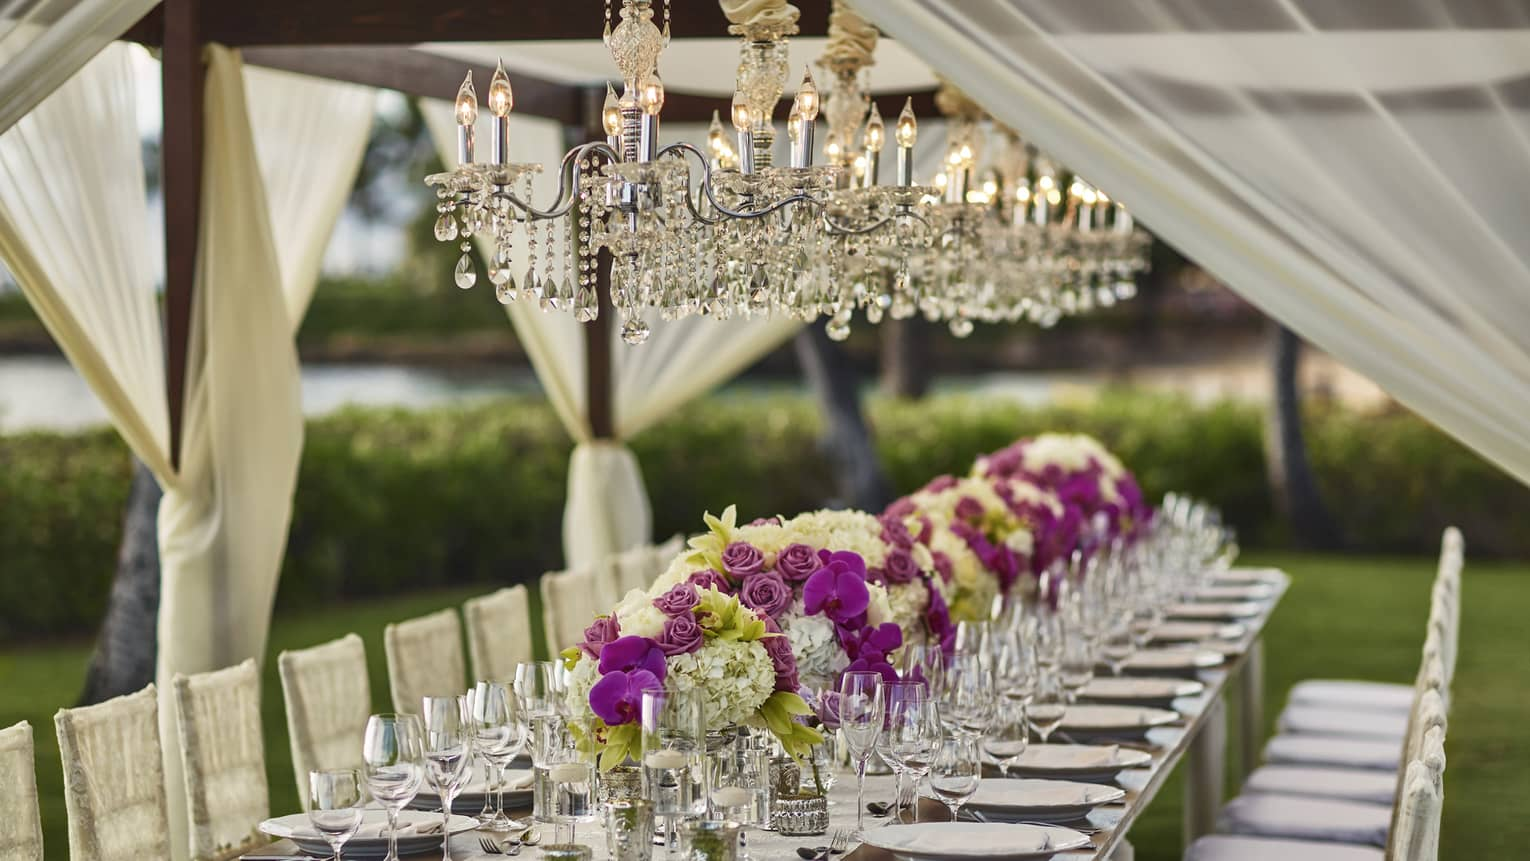 Long outdoor dining table with flowers, wine glasses under crystal chandeliers, white curtains